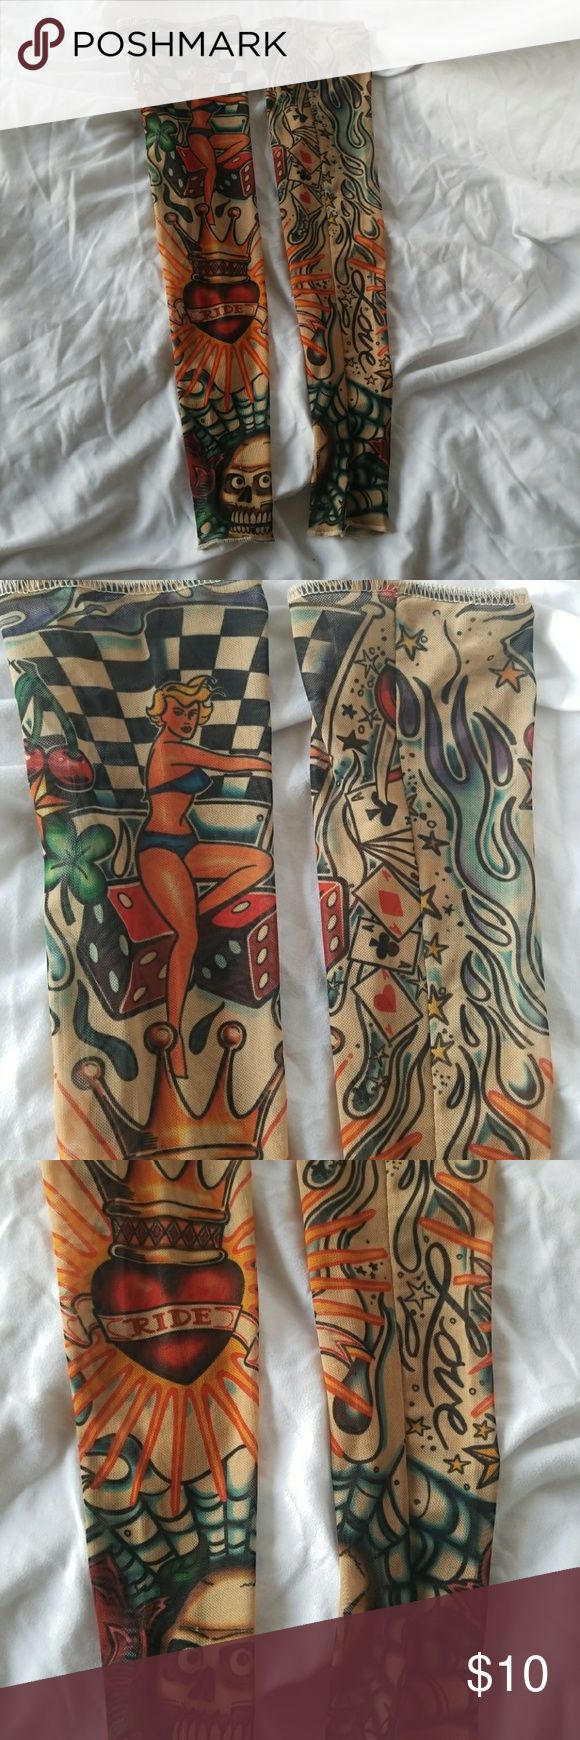 Costume Fake Tattoo Sleeves Fake Tattoo sleeves with elastic hold for upper arm 2 sleeves Covered in classic tattoo imagery - skulls, dice, pin ups, hearts, race check Wore once for a Kat Von D Halloween Costume Other